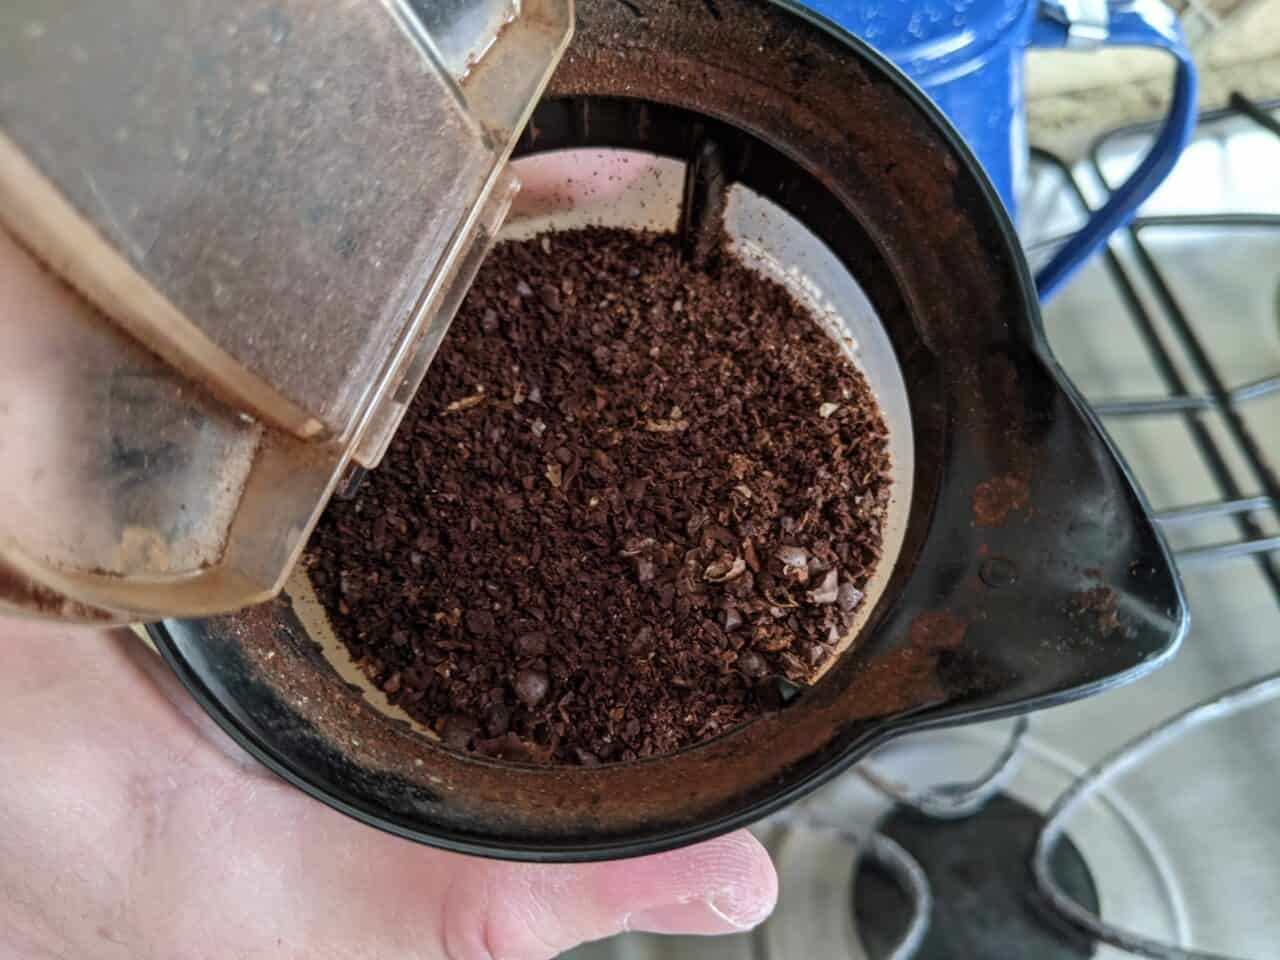 Coarse Grounds With Blade Grinder